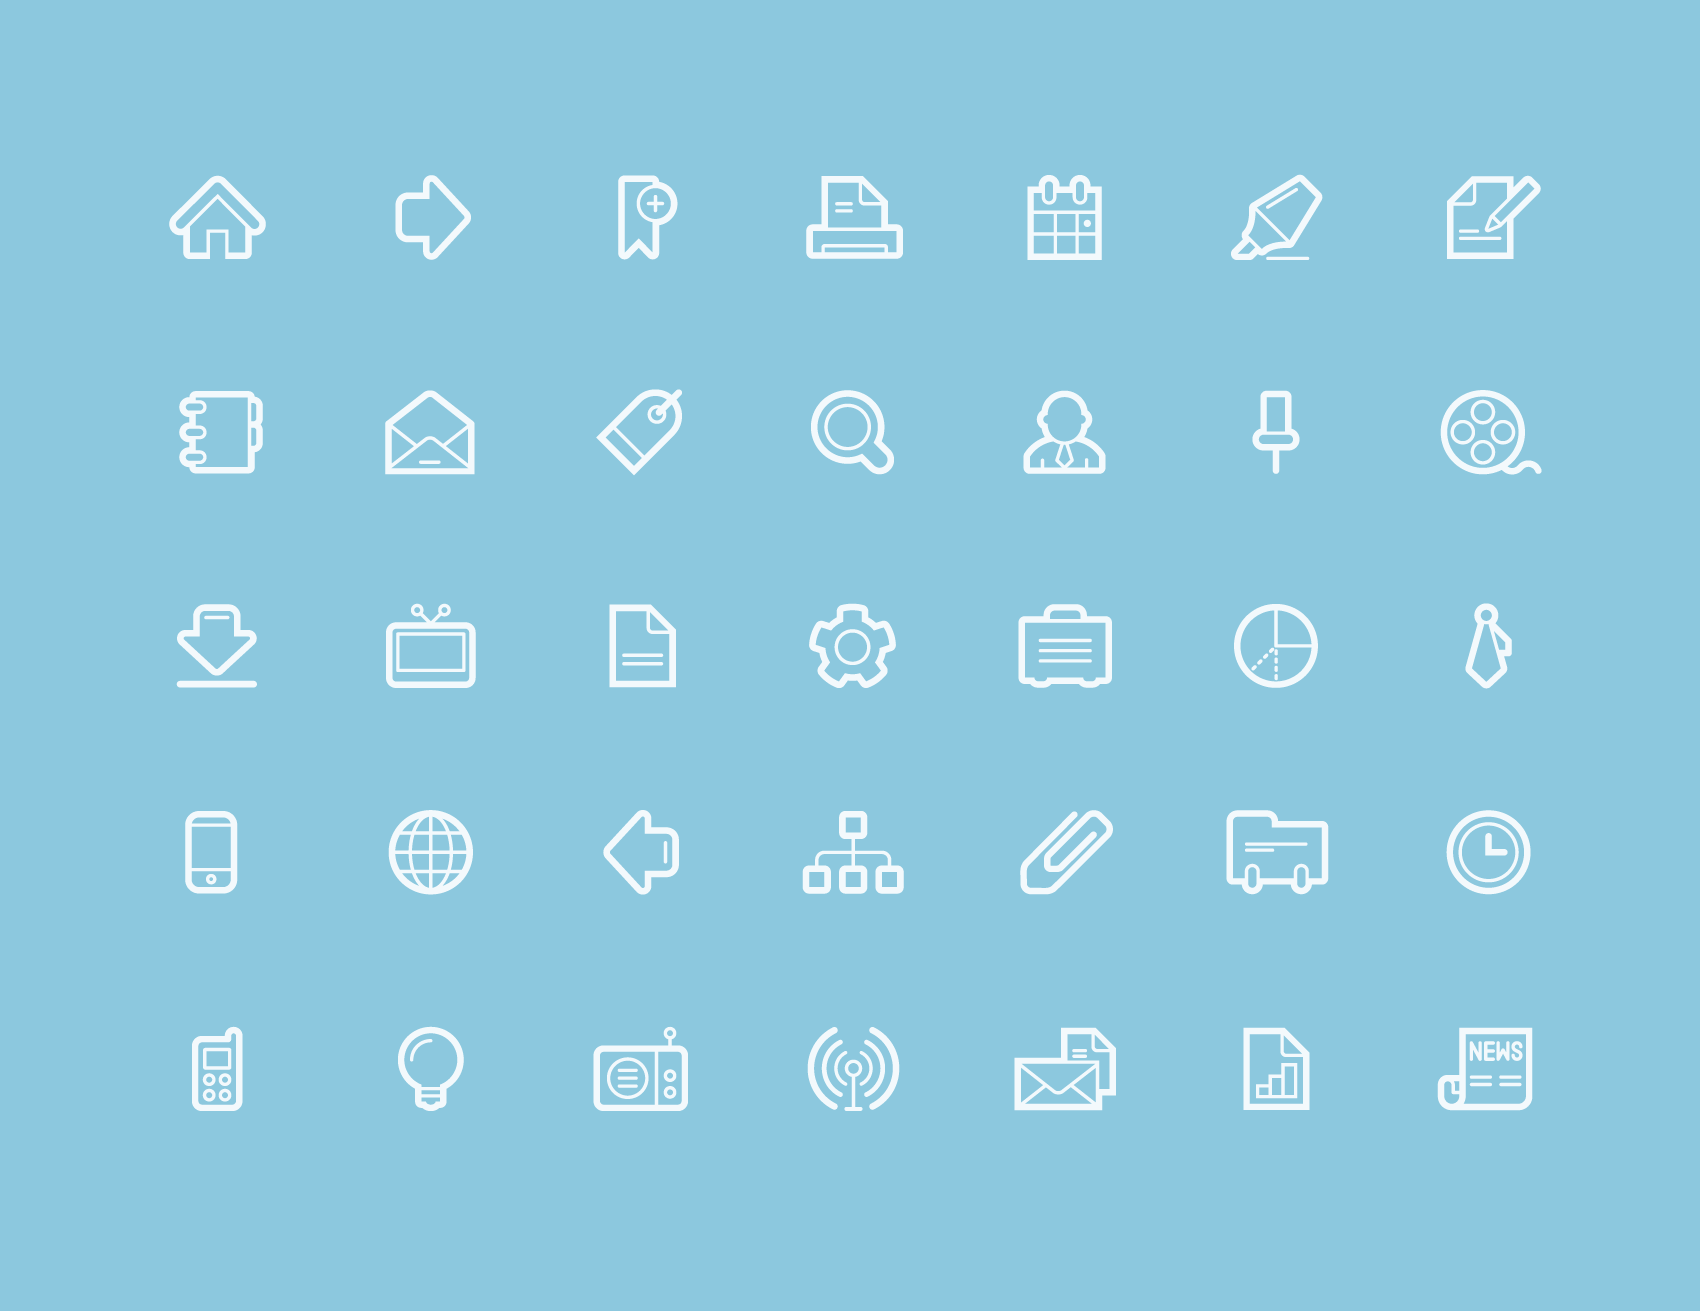 minimal designed icon set in contour style